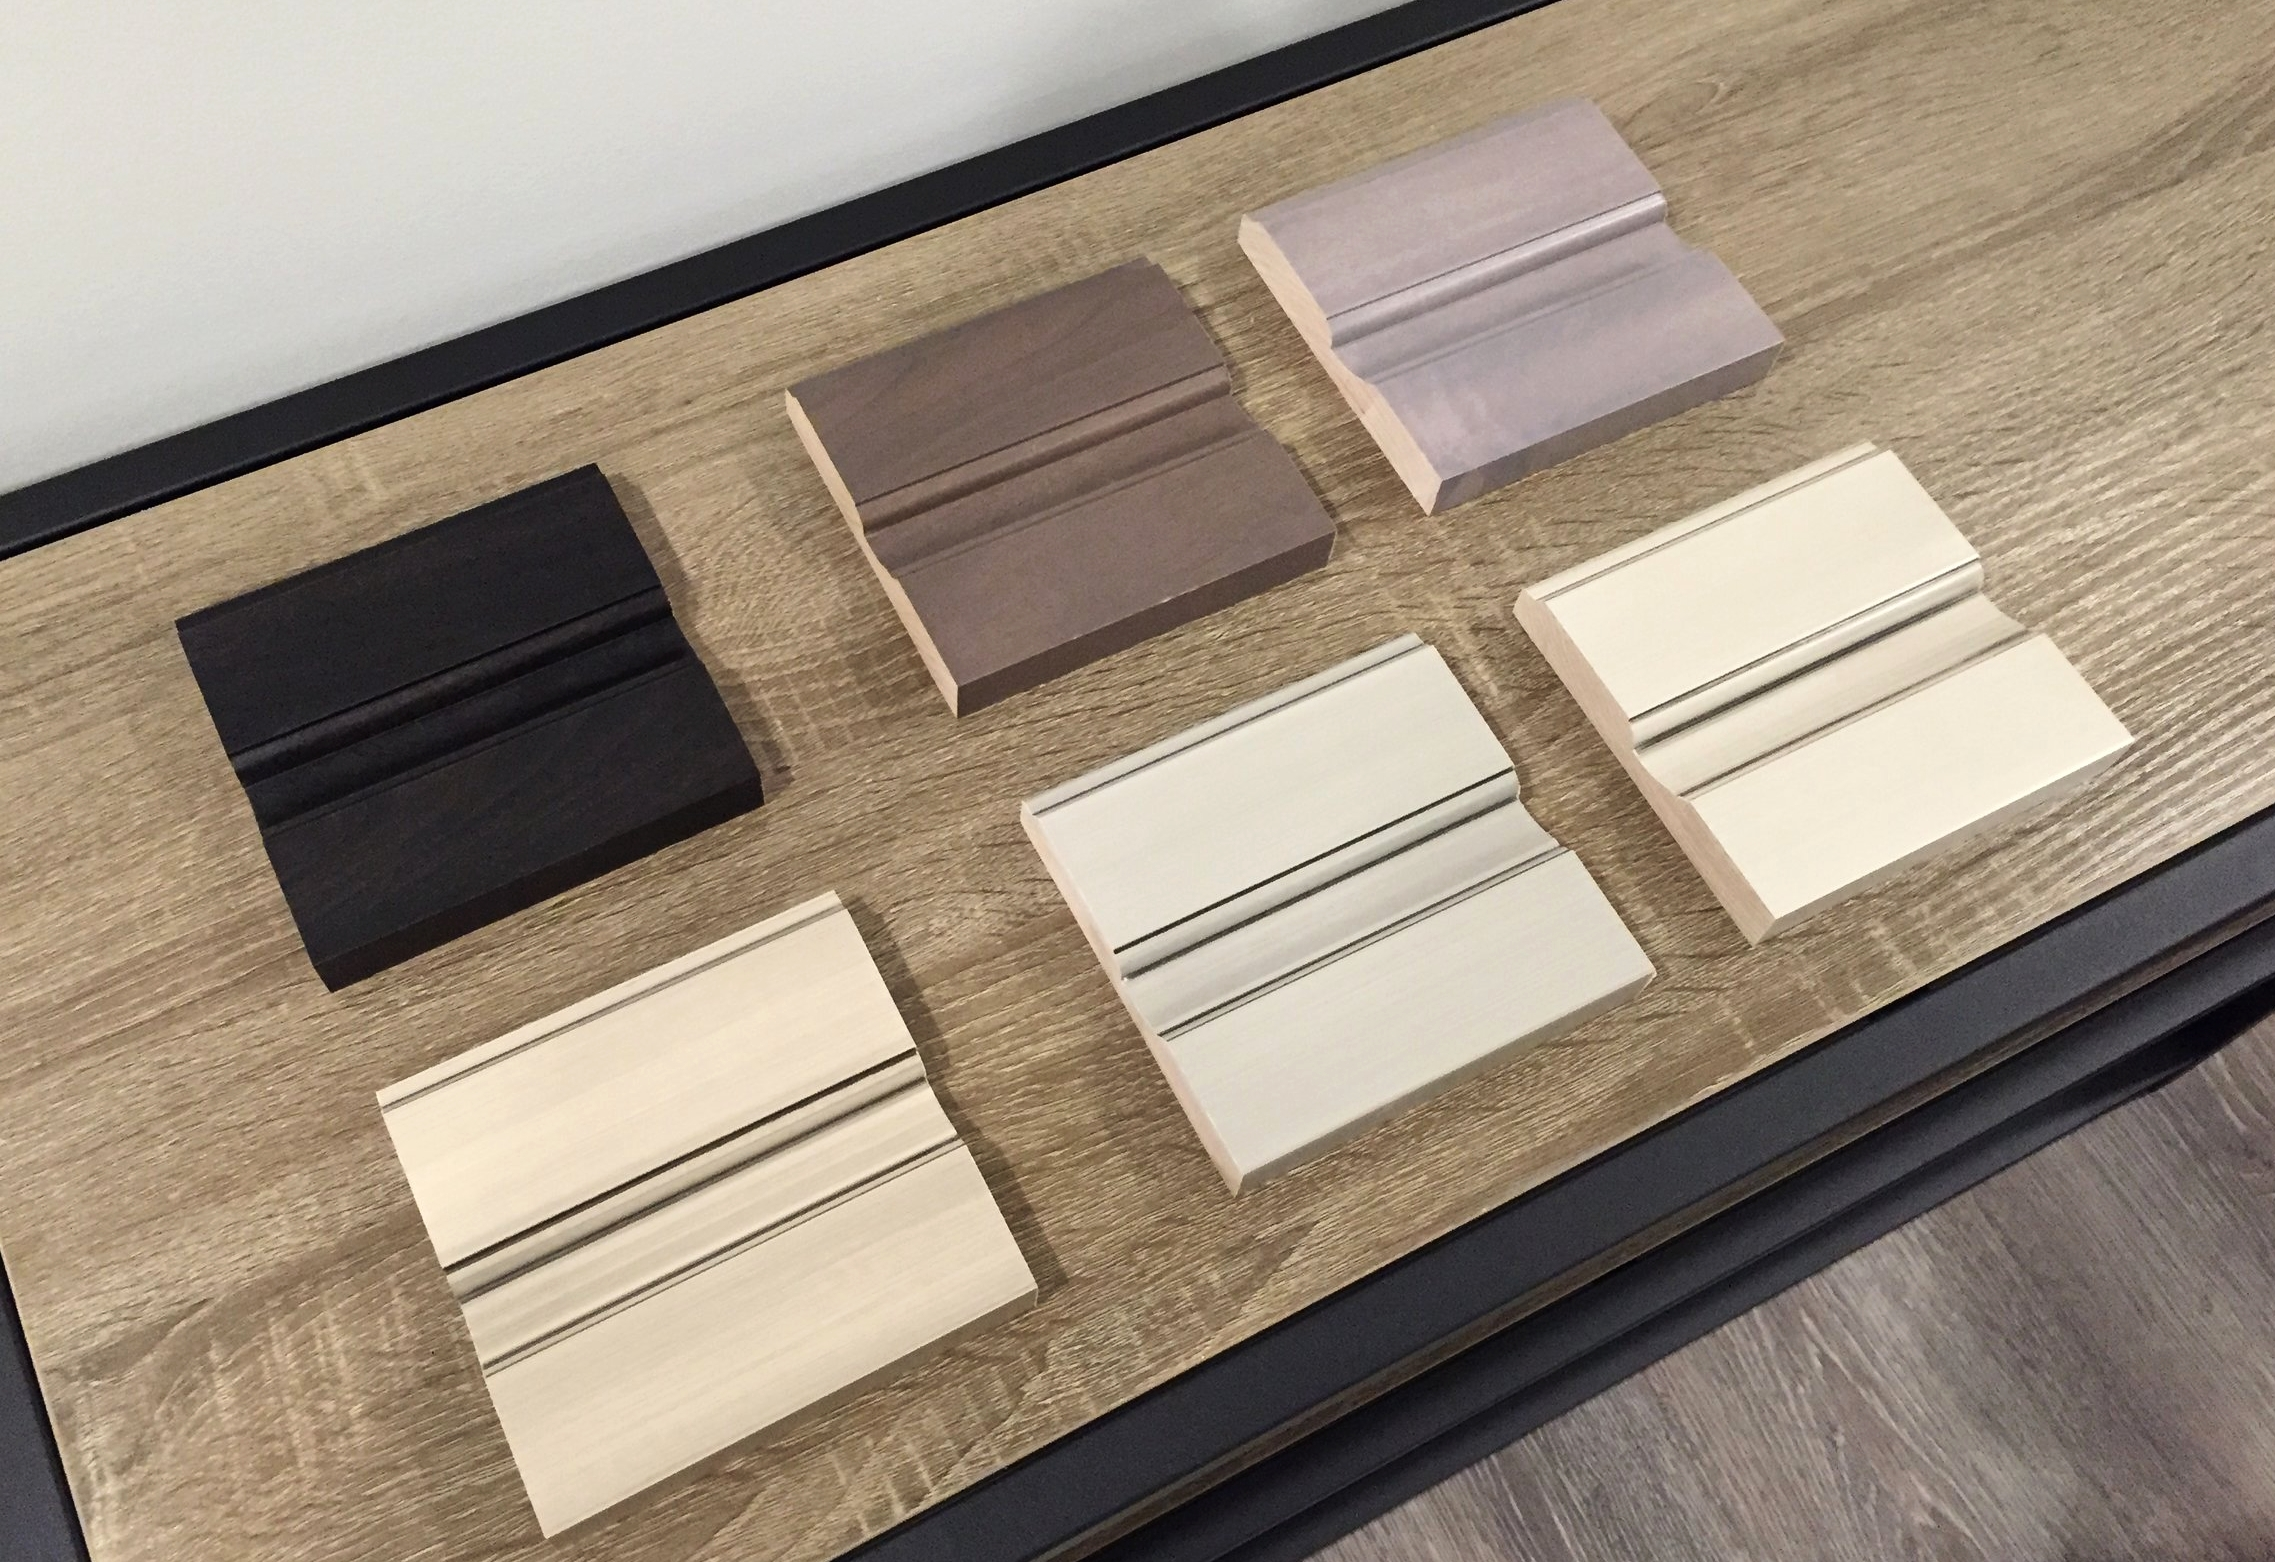 Ackley Cabinet Samples2.JPG